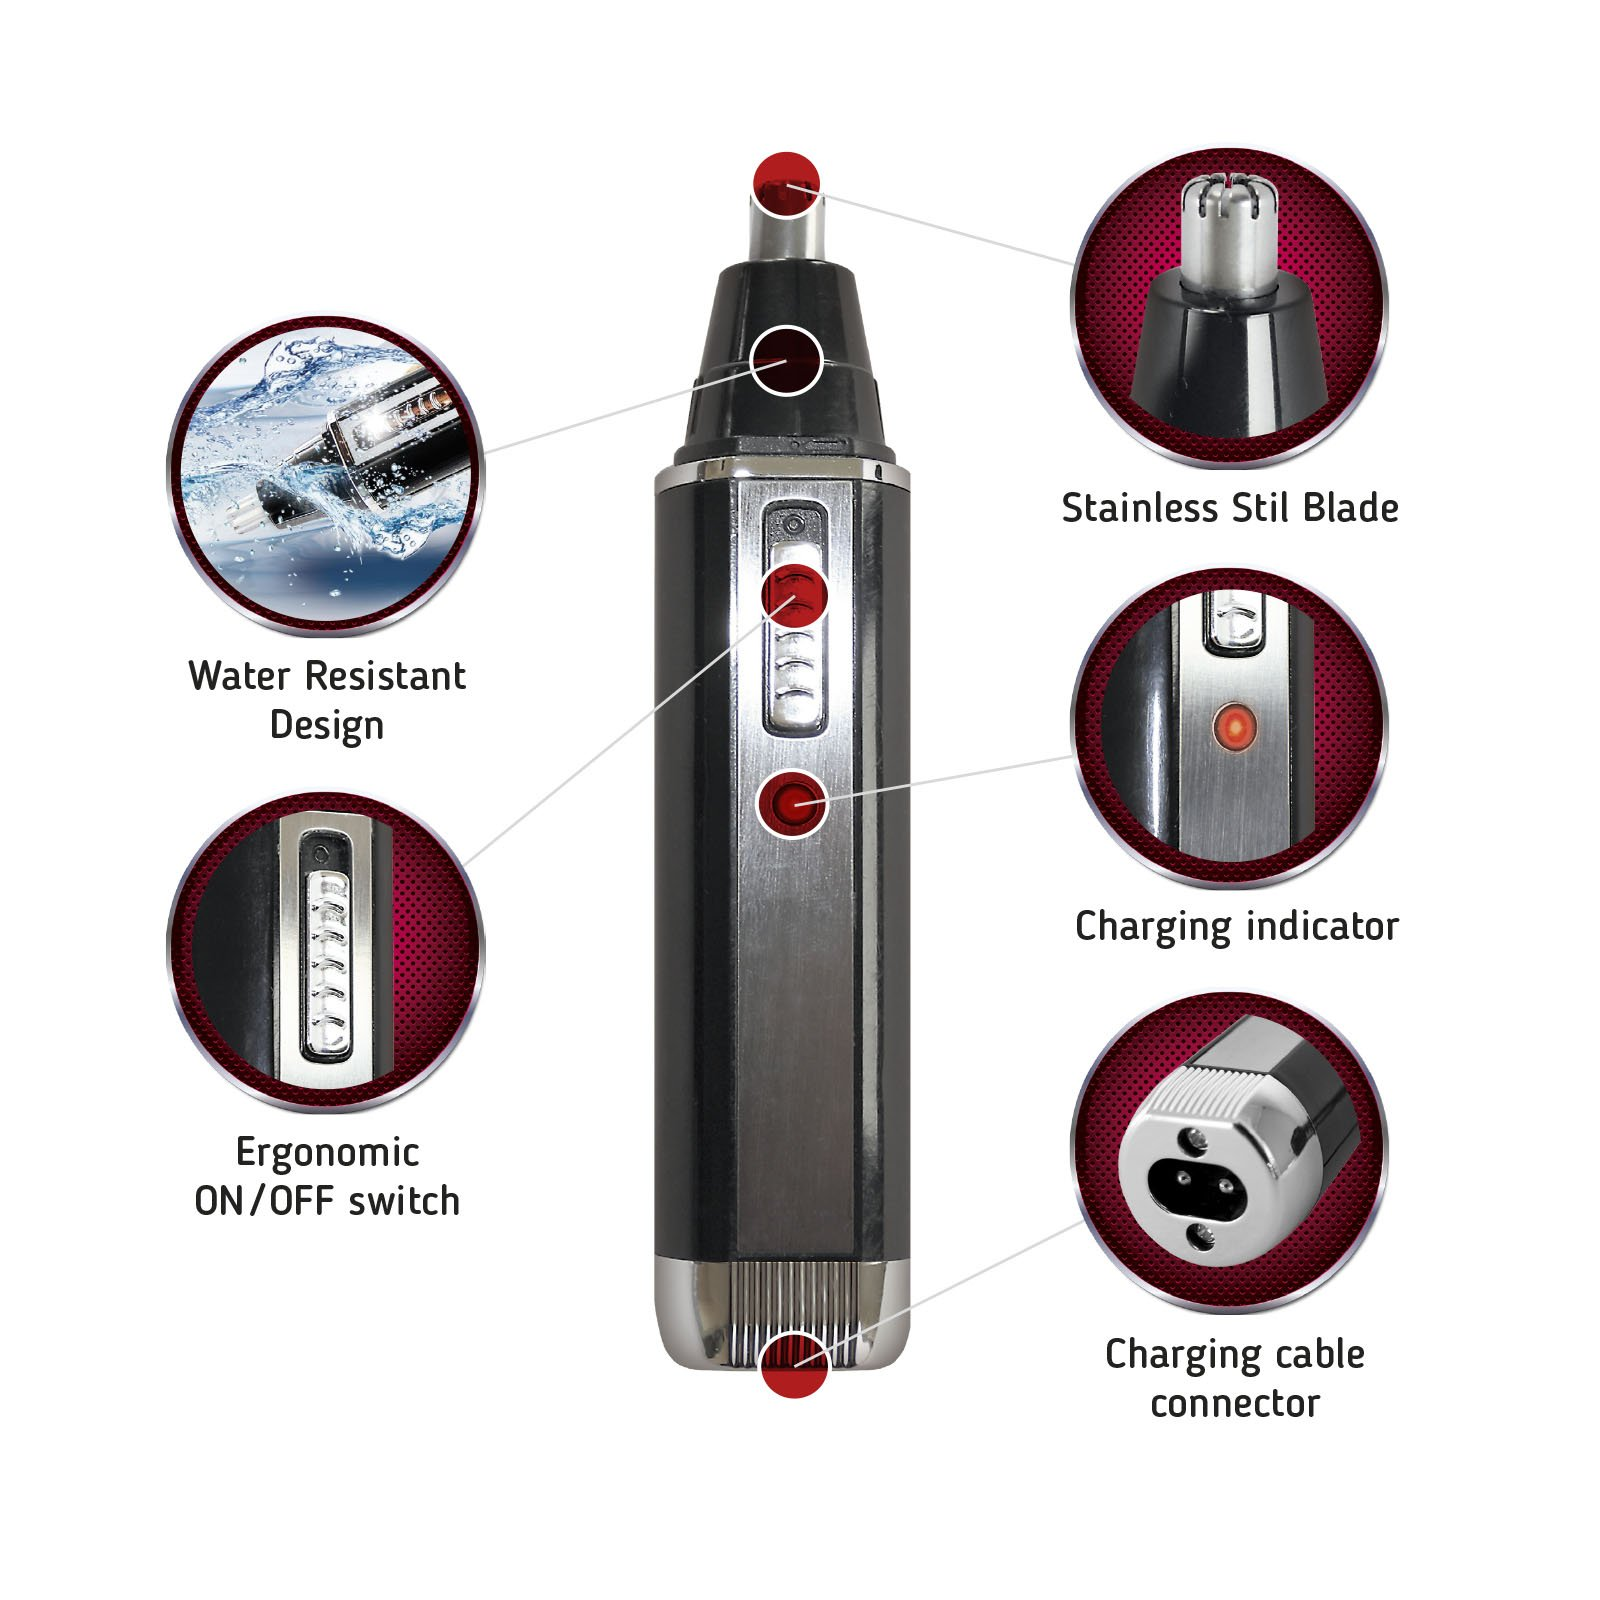 Nose Hair Trimmer - Nose Trimmer for Women Men - Personal Electric Cordless Eyebrow Ear Trimmer - 2 in 1 Best Face Precision Portable Trimmer - Facial Rechargeable Stainless Steel Nose Clippers